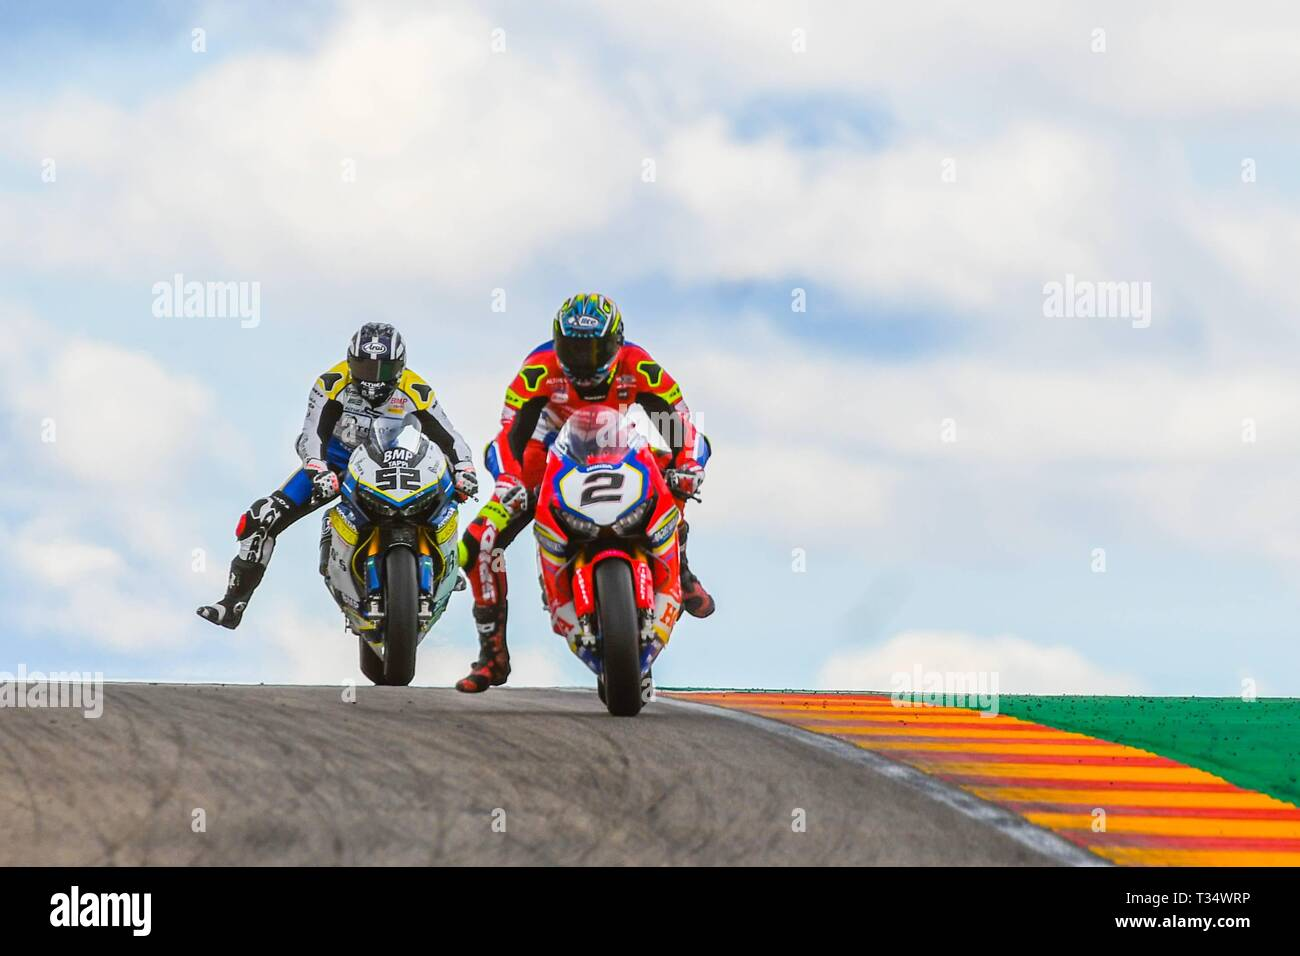 Alcañiz, Spain. 6th April, 2019. Leon Camier (2) of Great Britain and Moriwaki Althea HONDA Team and Alessandro Delbianco (52) of Italy and Althea Mie Racing Team during the WorldSBK Superpole Race of the Aragon Grand Prix at Motorland racetrack in Alcañiz, Spain.  on April  06, 2019 (Photo: Alvaro Sanchez)  Cordon Press Credit: CORDON PRESS/Alamy Live News Stock Photo